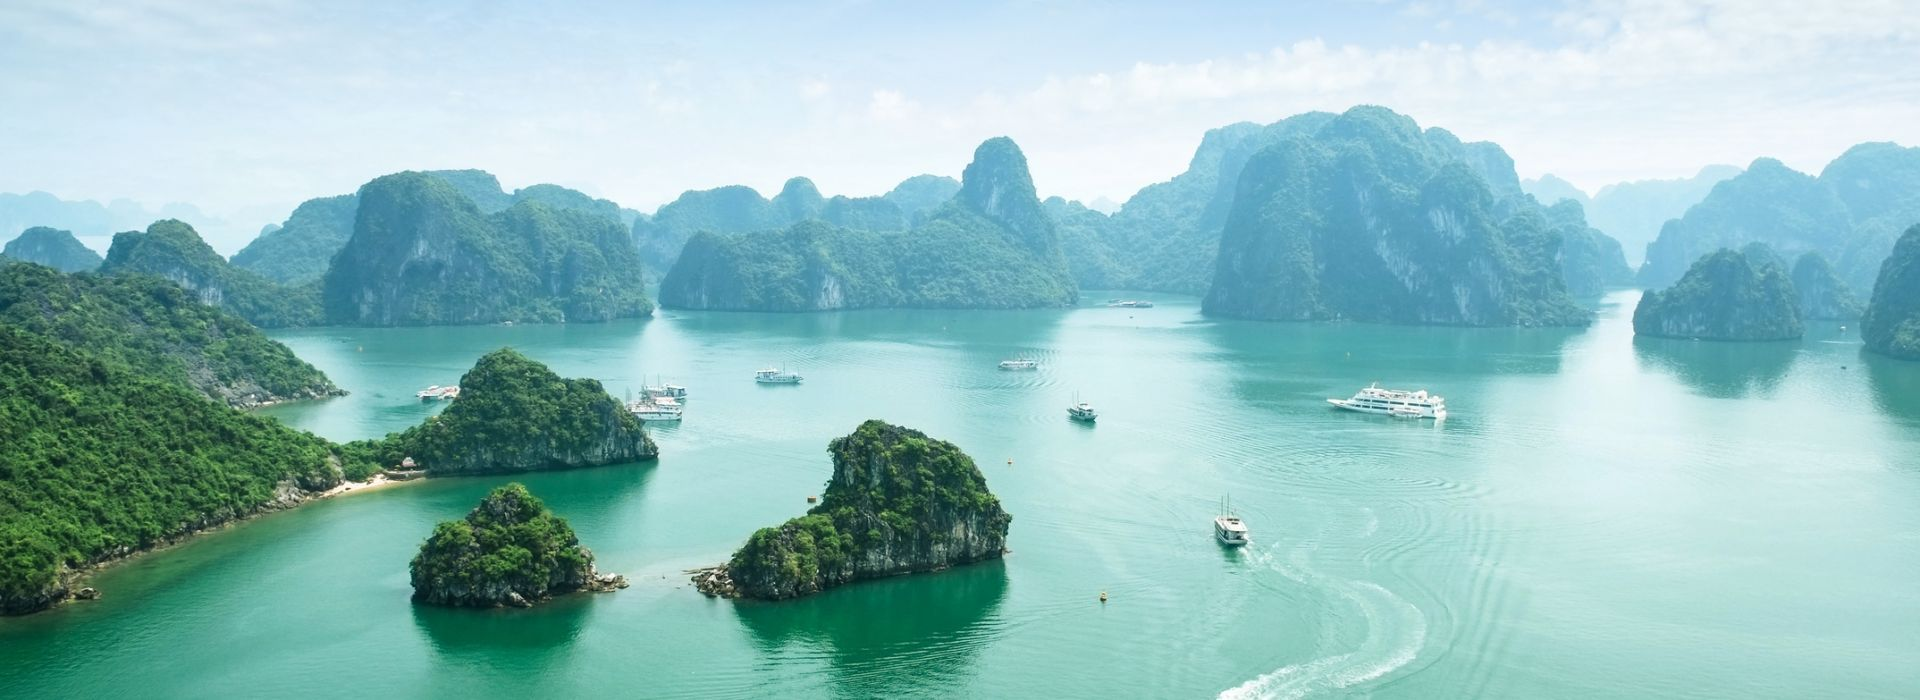 River cruise Tours in Ho Chi Minh City